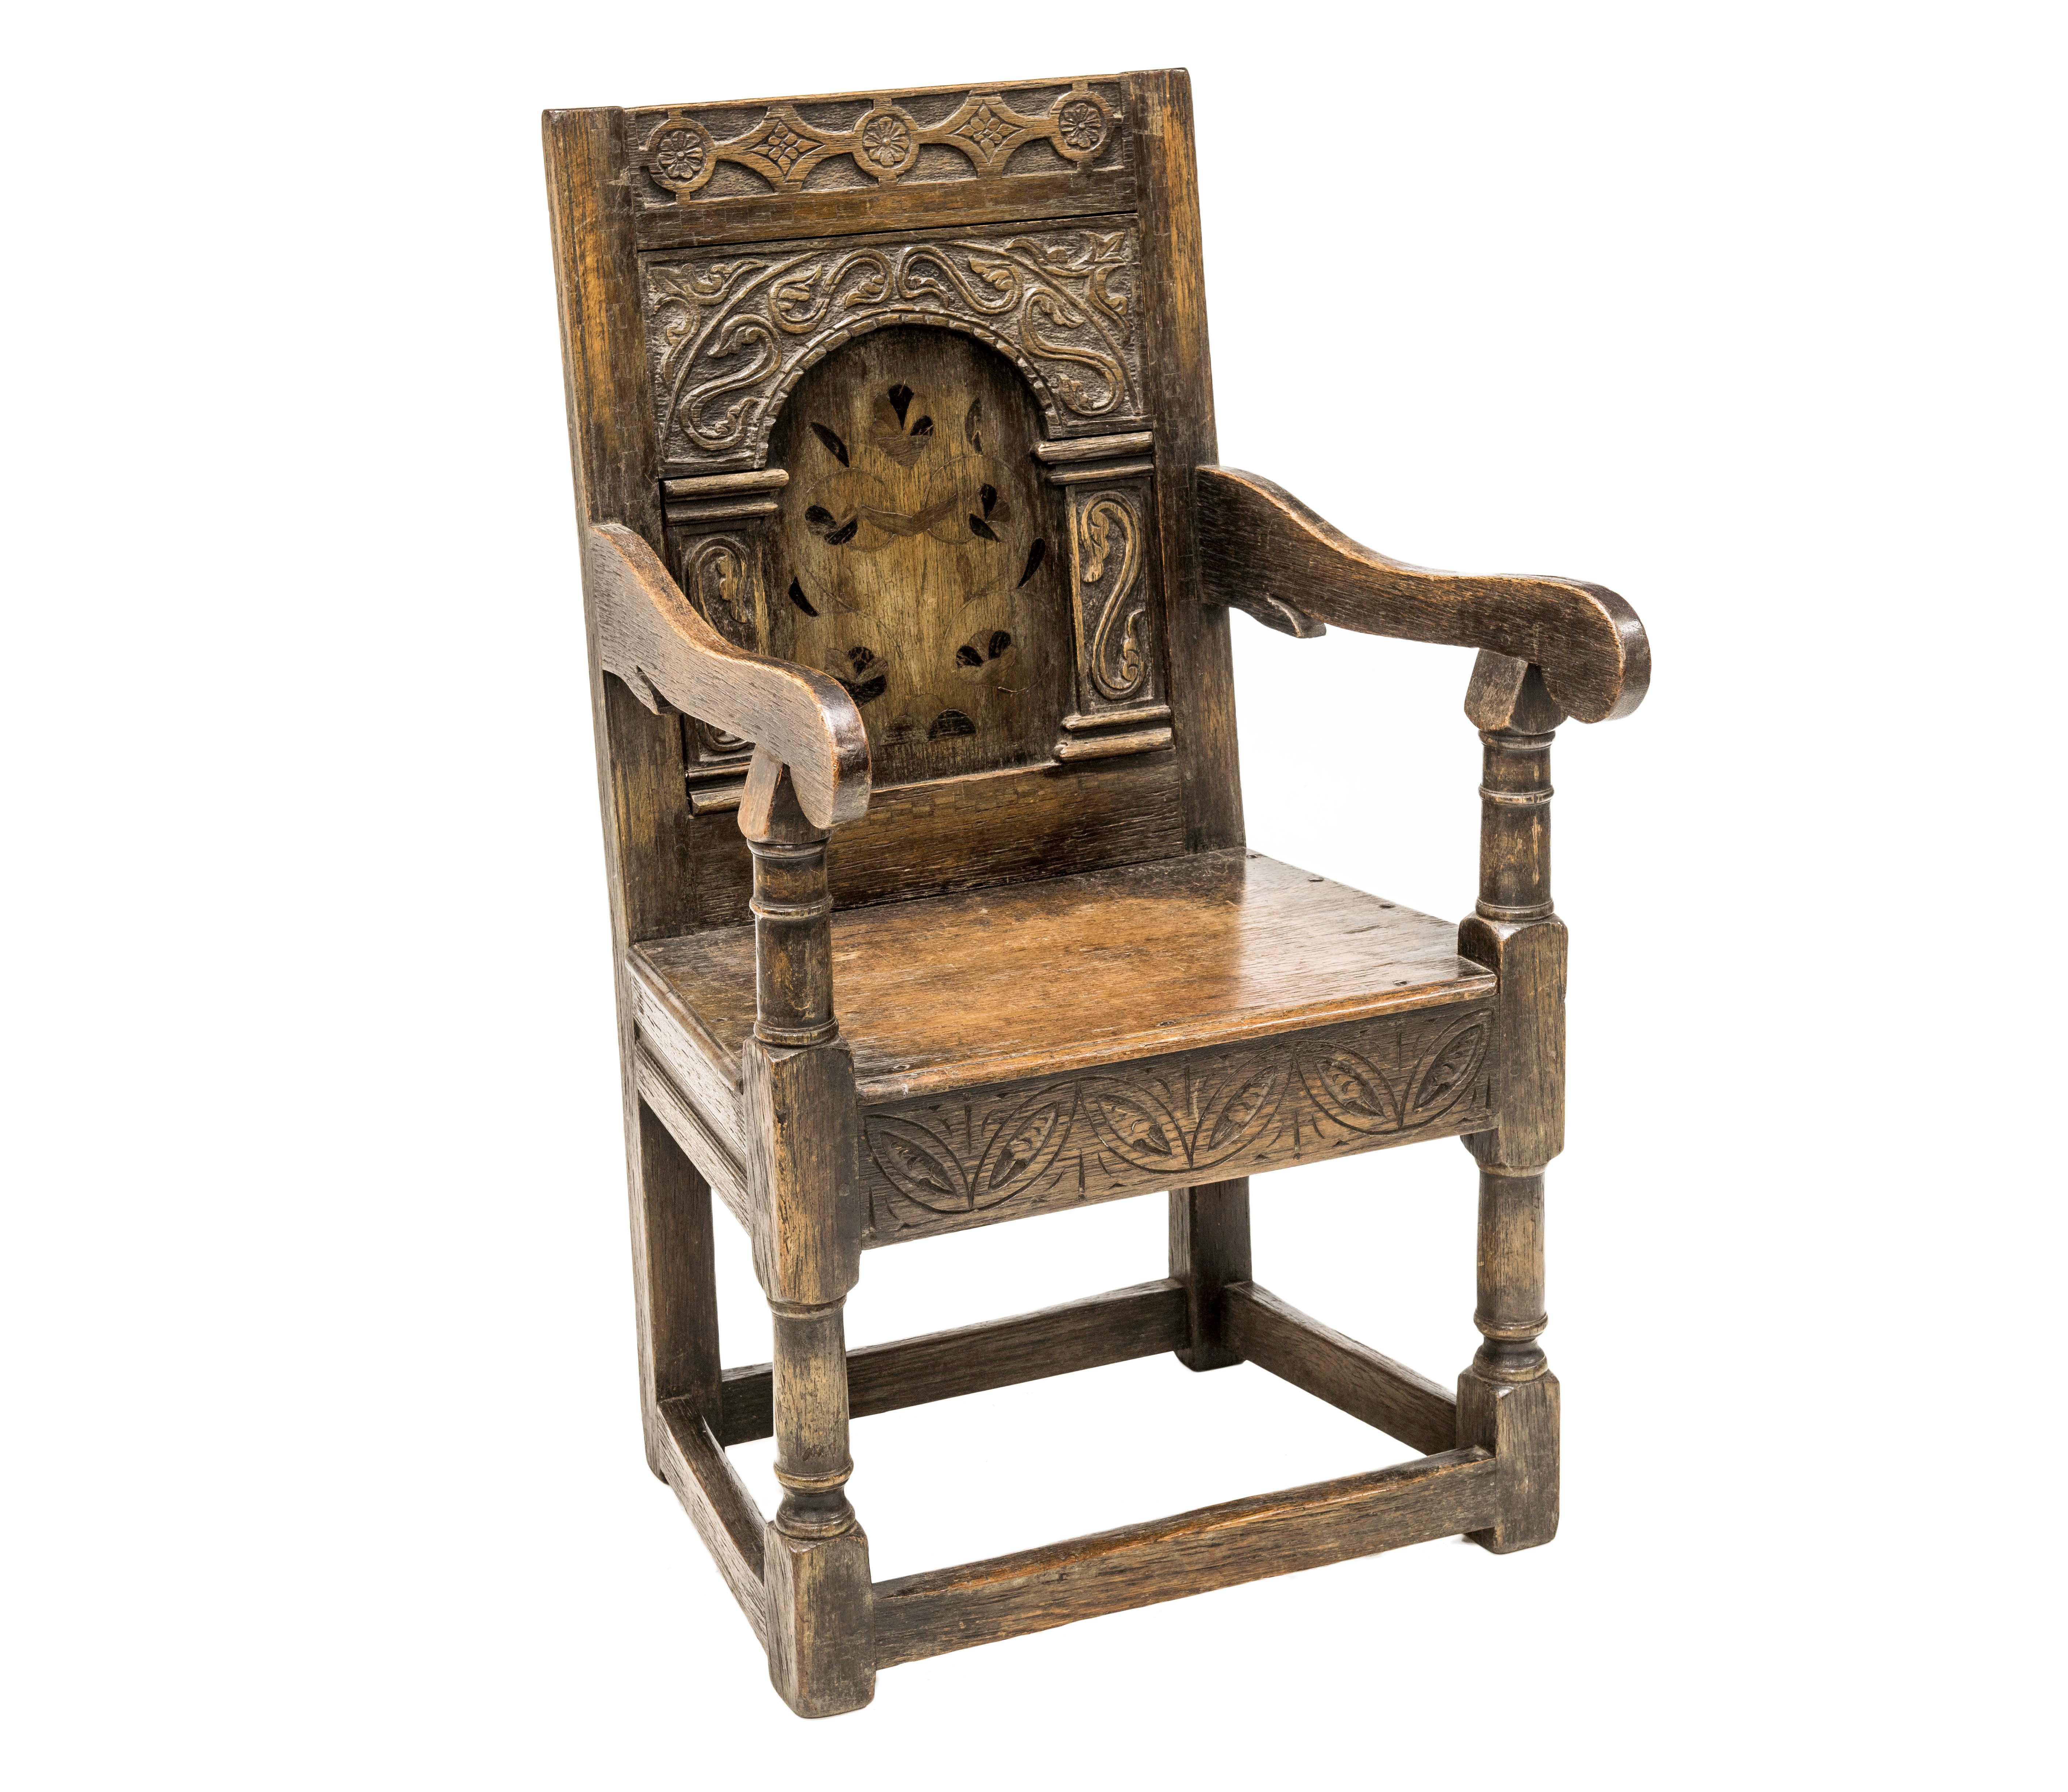 AN OAK WAINSCOT CHAIR IN 17th CENTURY STYLE, 19th Century